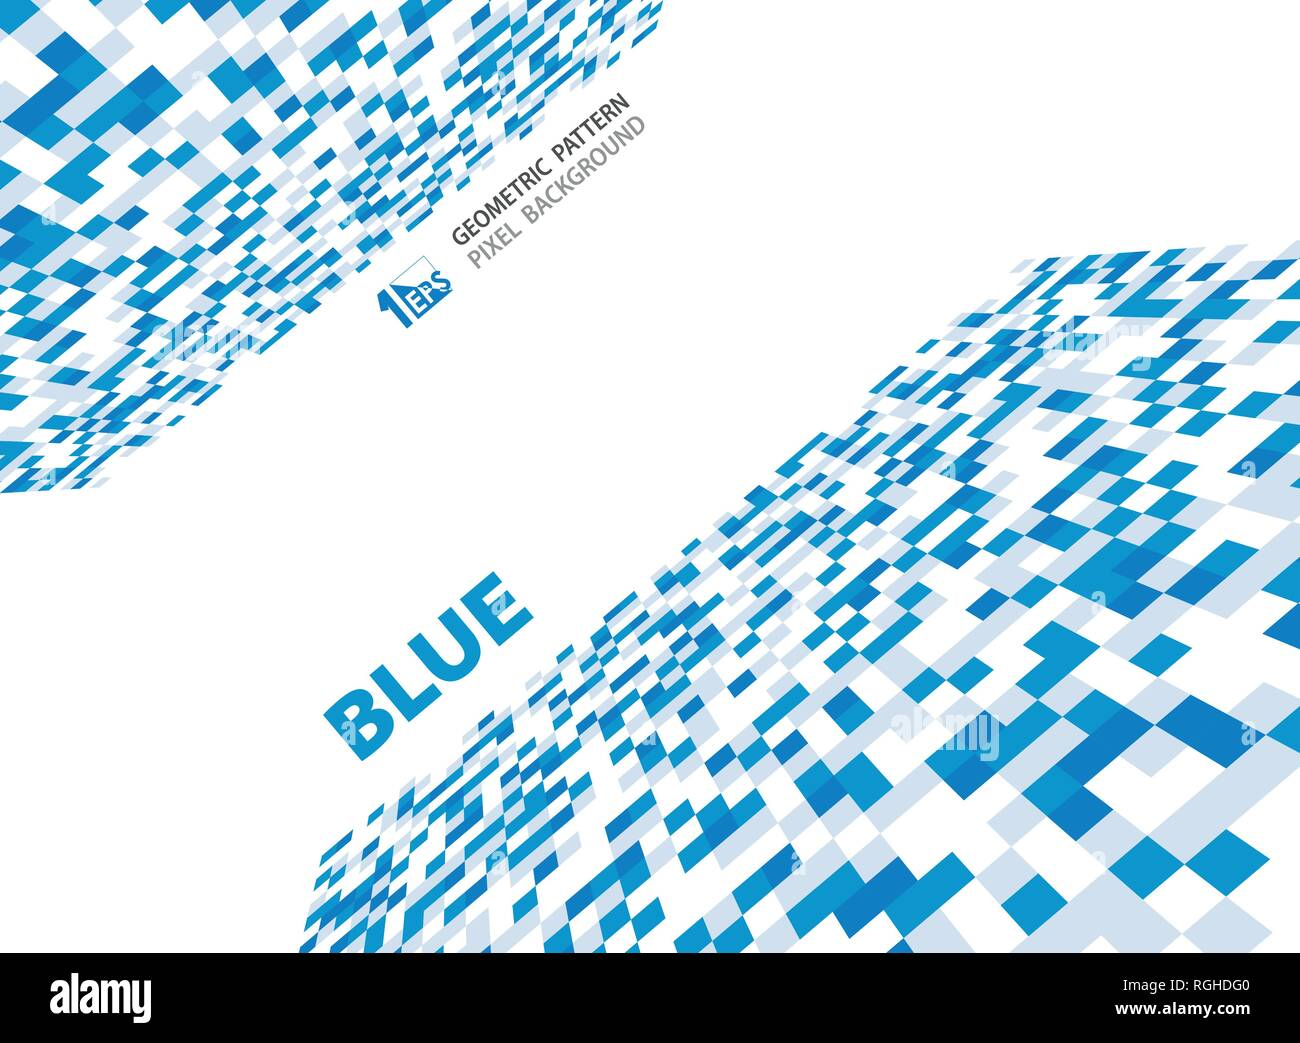 Abstract pixel blue geometric pattern design. Small decorating details of illustration. vector eps10 - Stock Vector